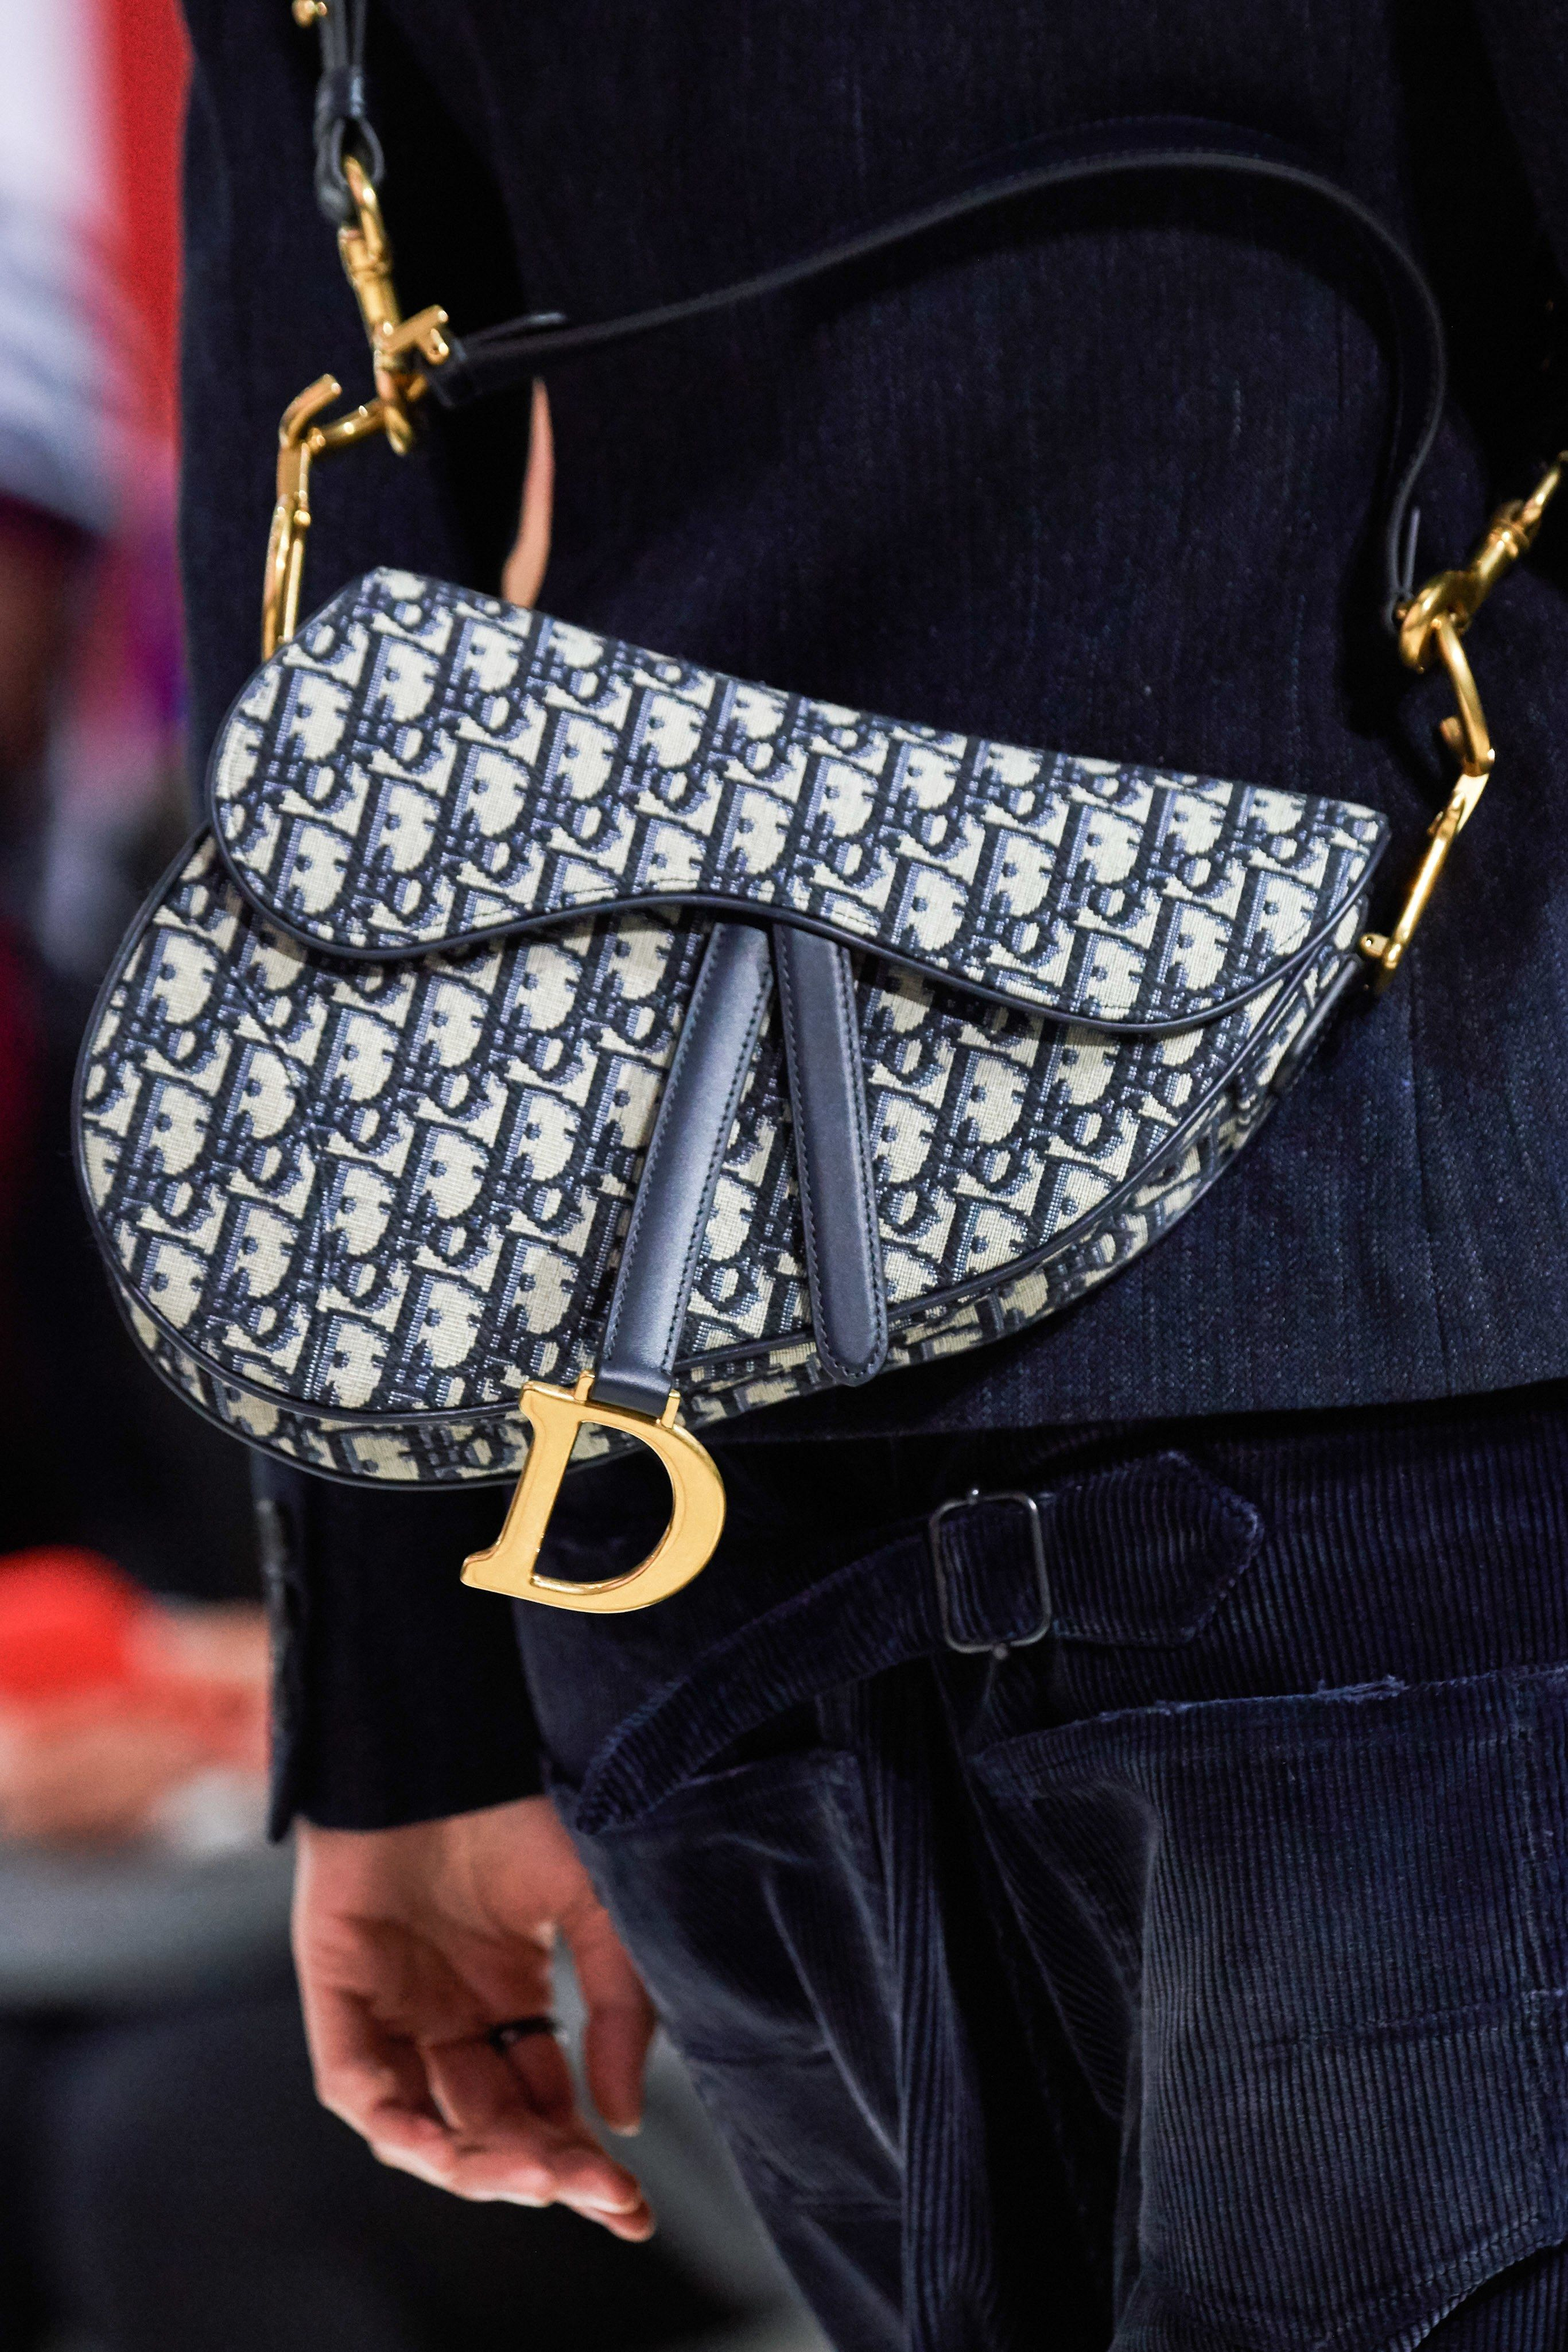 Christian Dior Fall 2019 Ready To Wear Collection Vogue Christian Dior Bags Dior Purses Dior Bag